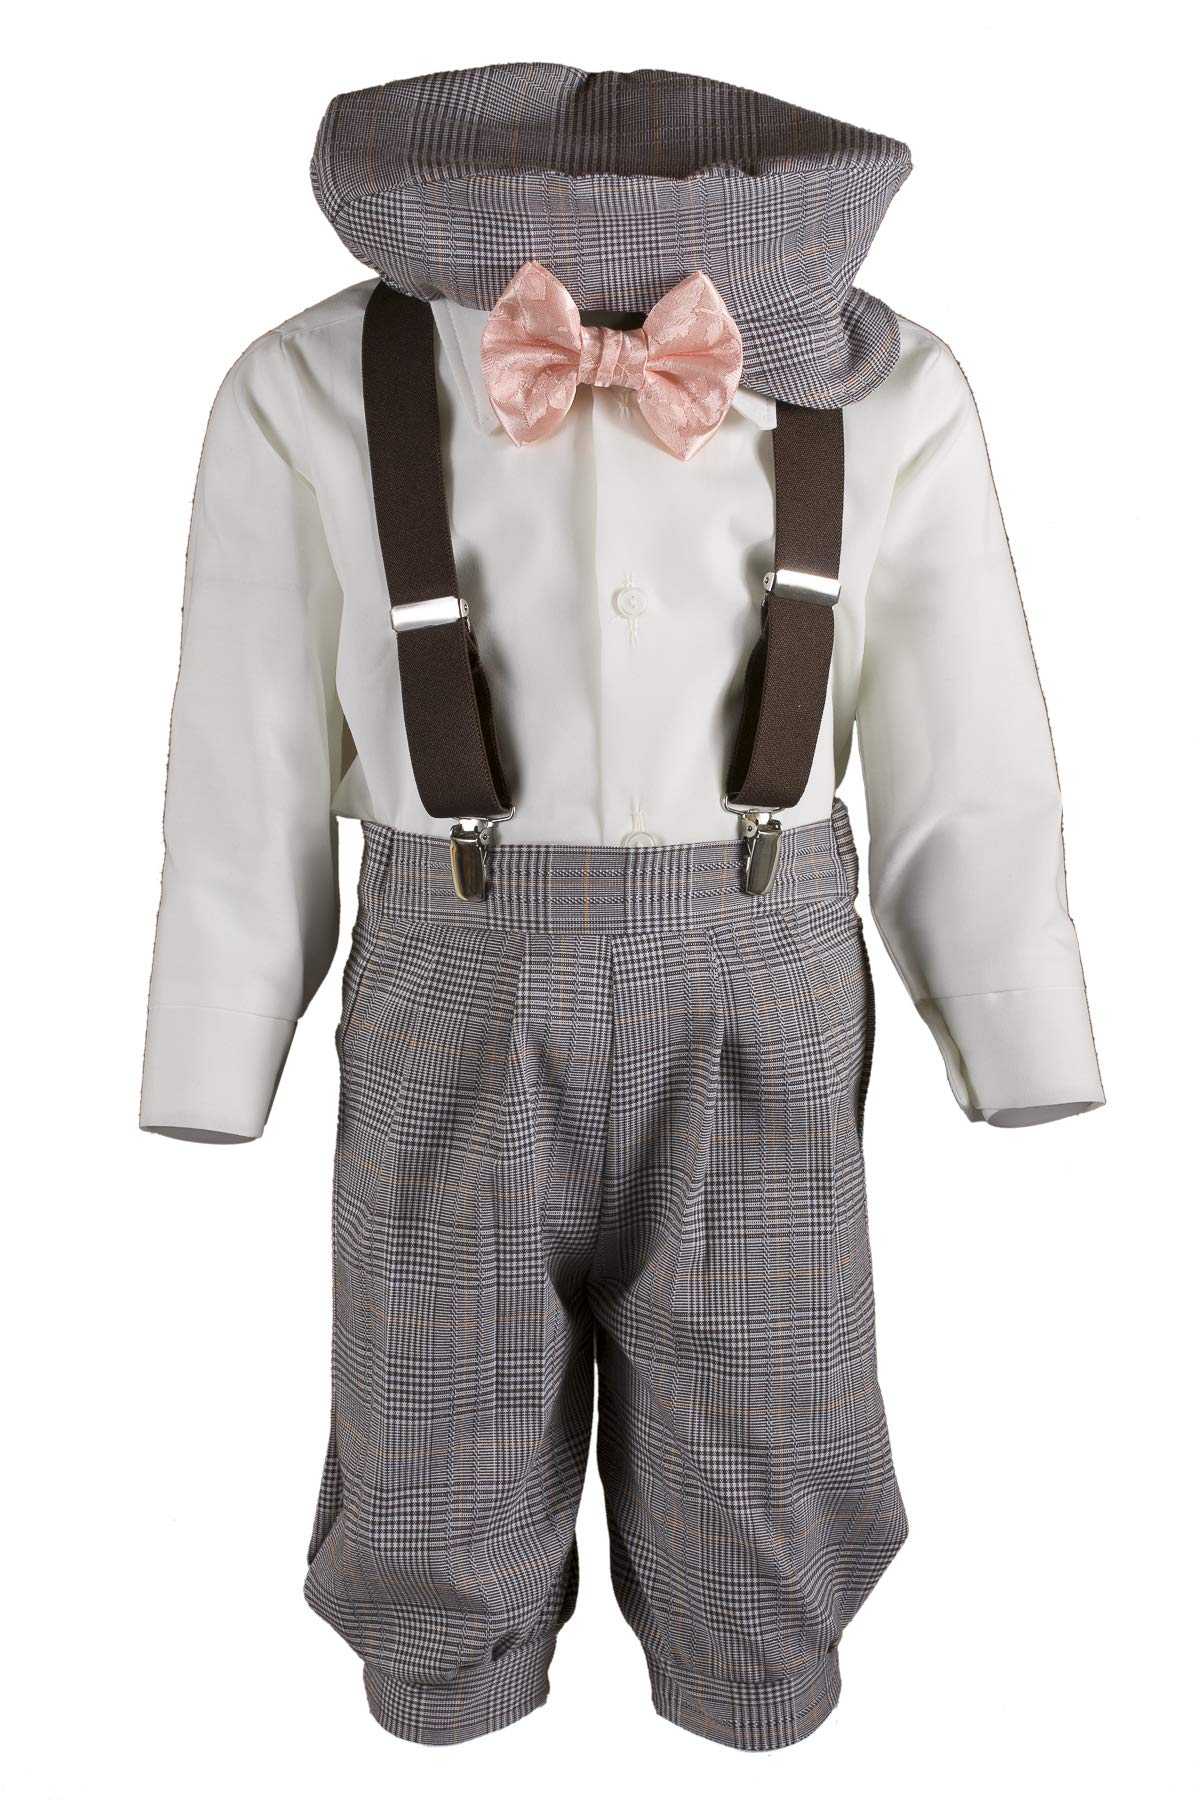 Boys Tan Plaid Knickers Pageboy Cap with Peach Rose Bow Tie & Suspenders (3T)